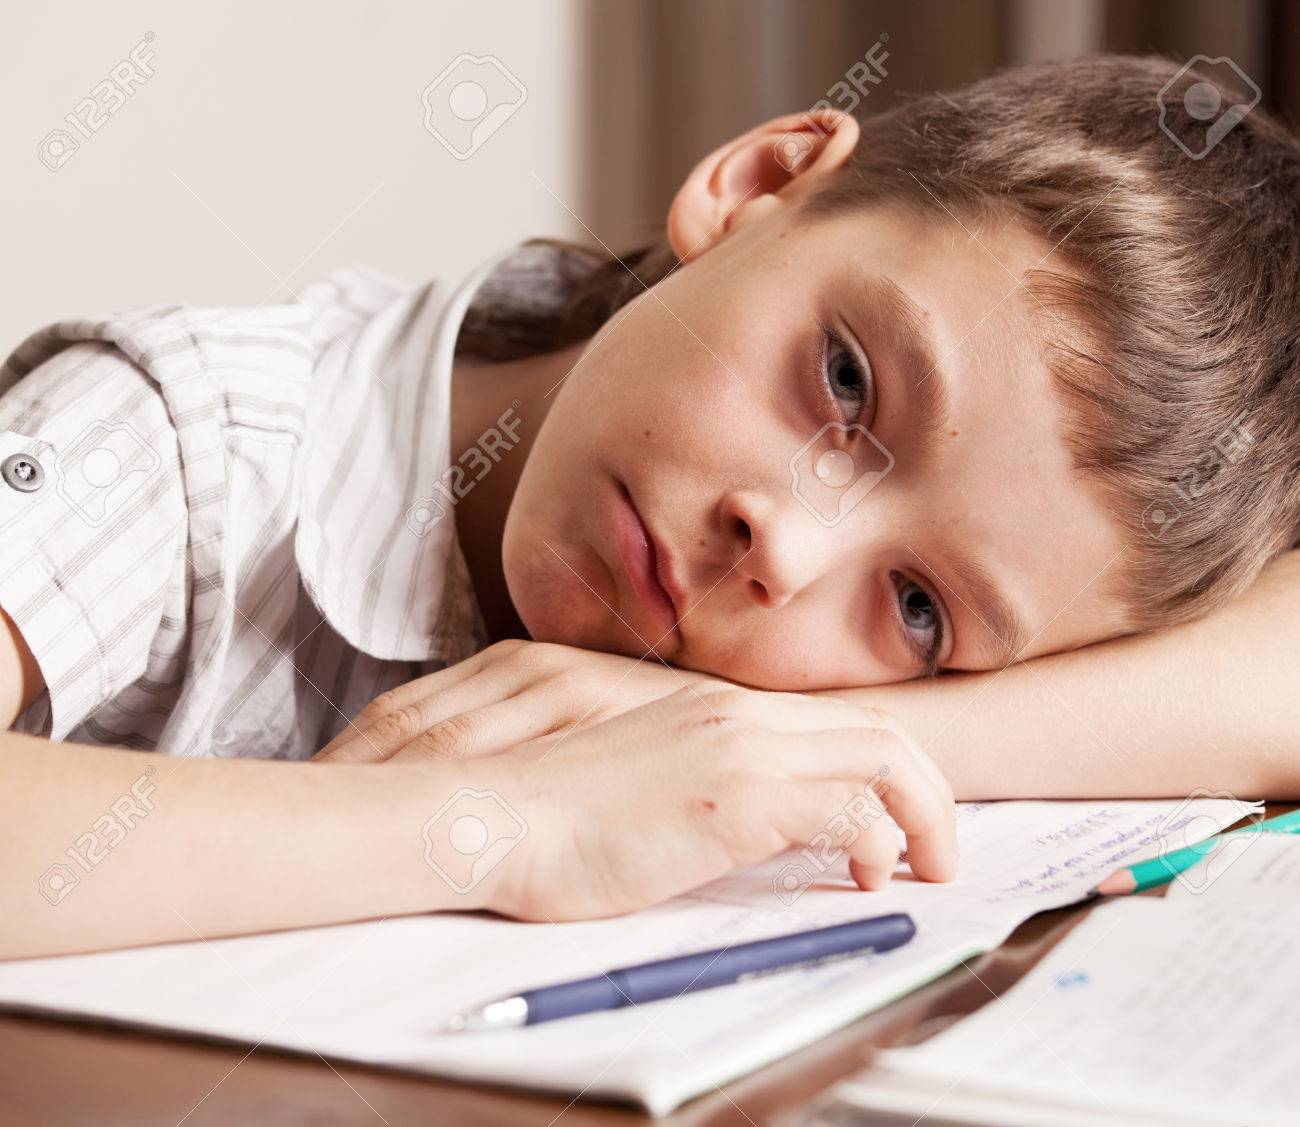 8yo daughter cries over homework constantly